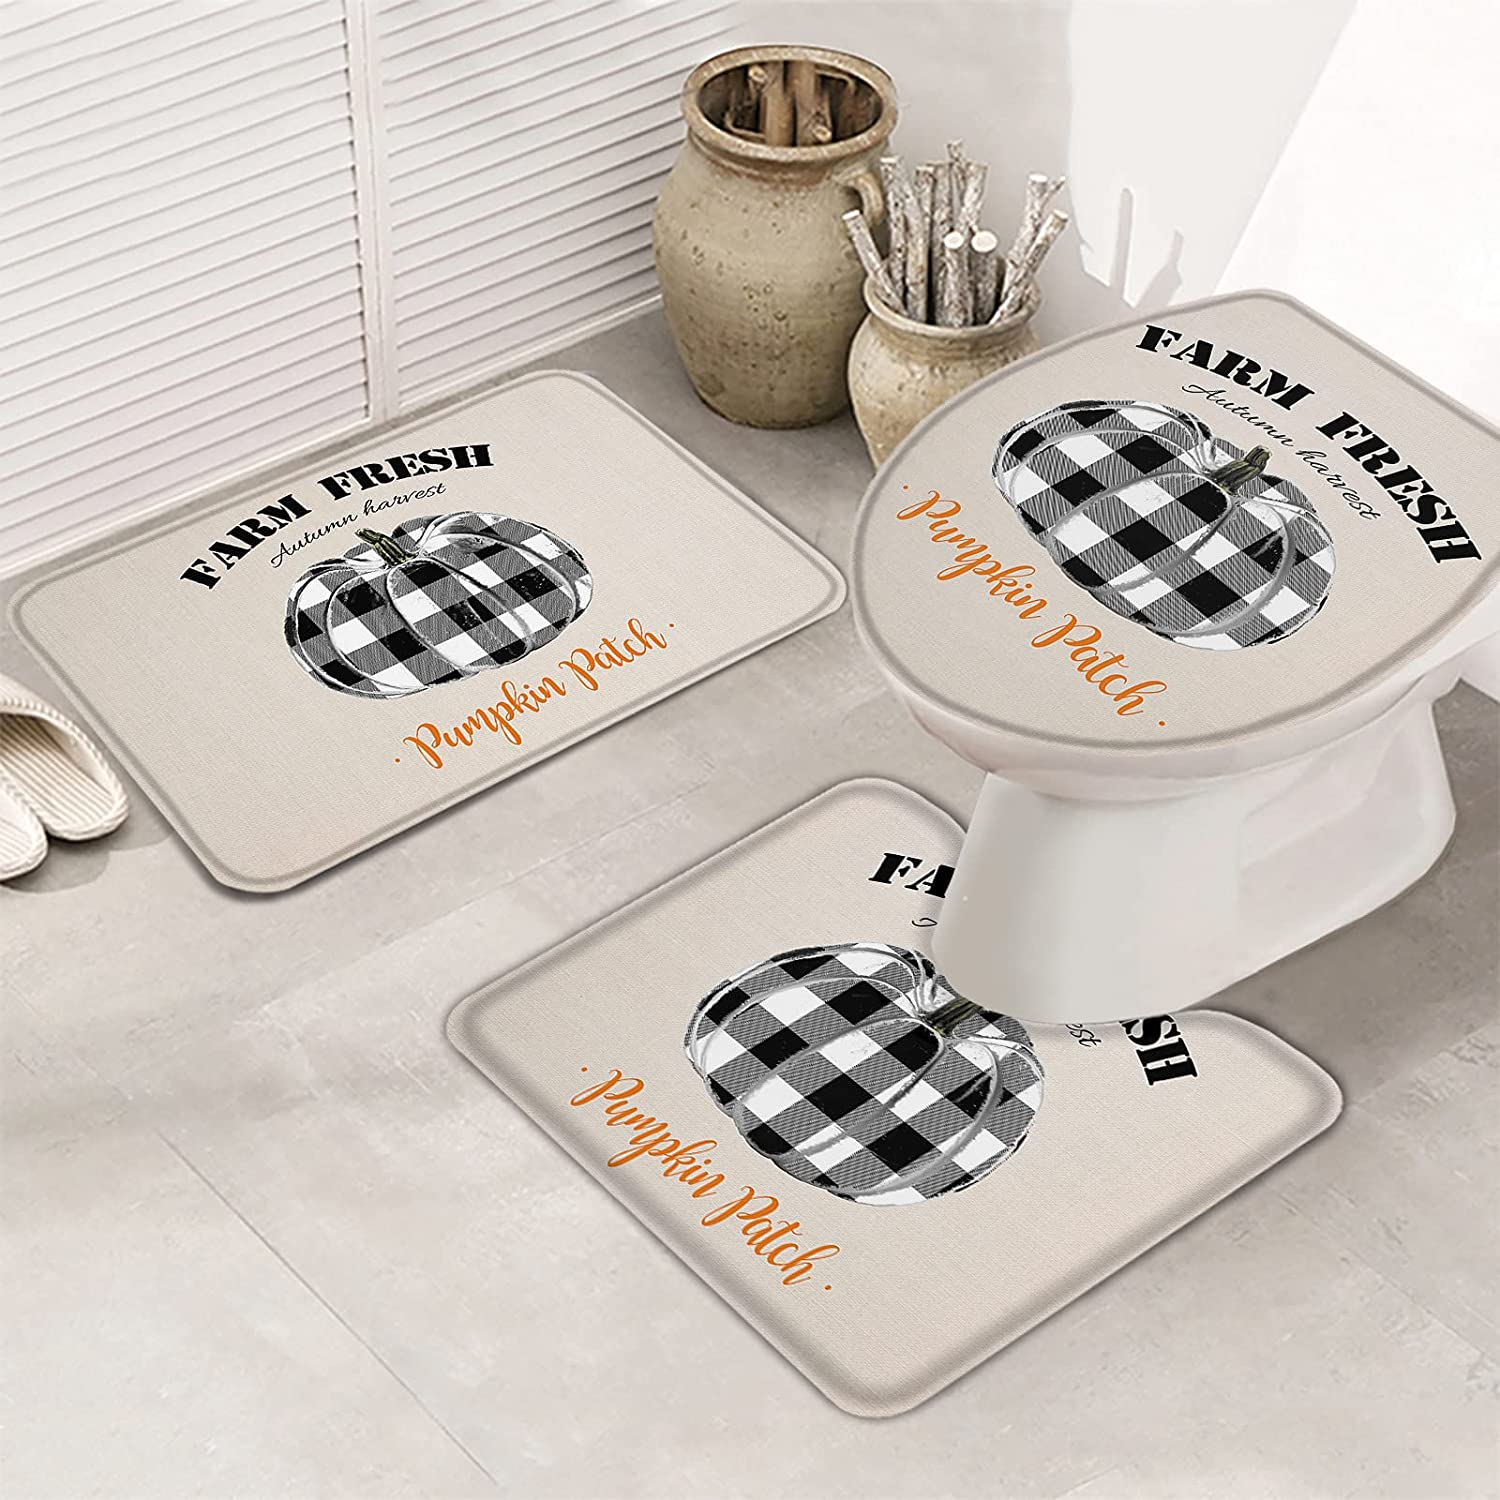 3 Piece Set Limited time sale Bathroom Rugs for Pumpkin Plaid Re Black Watercolor New item